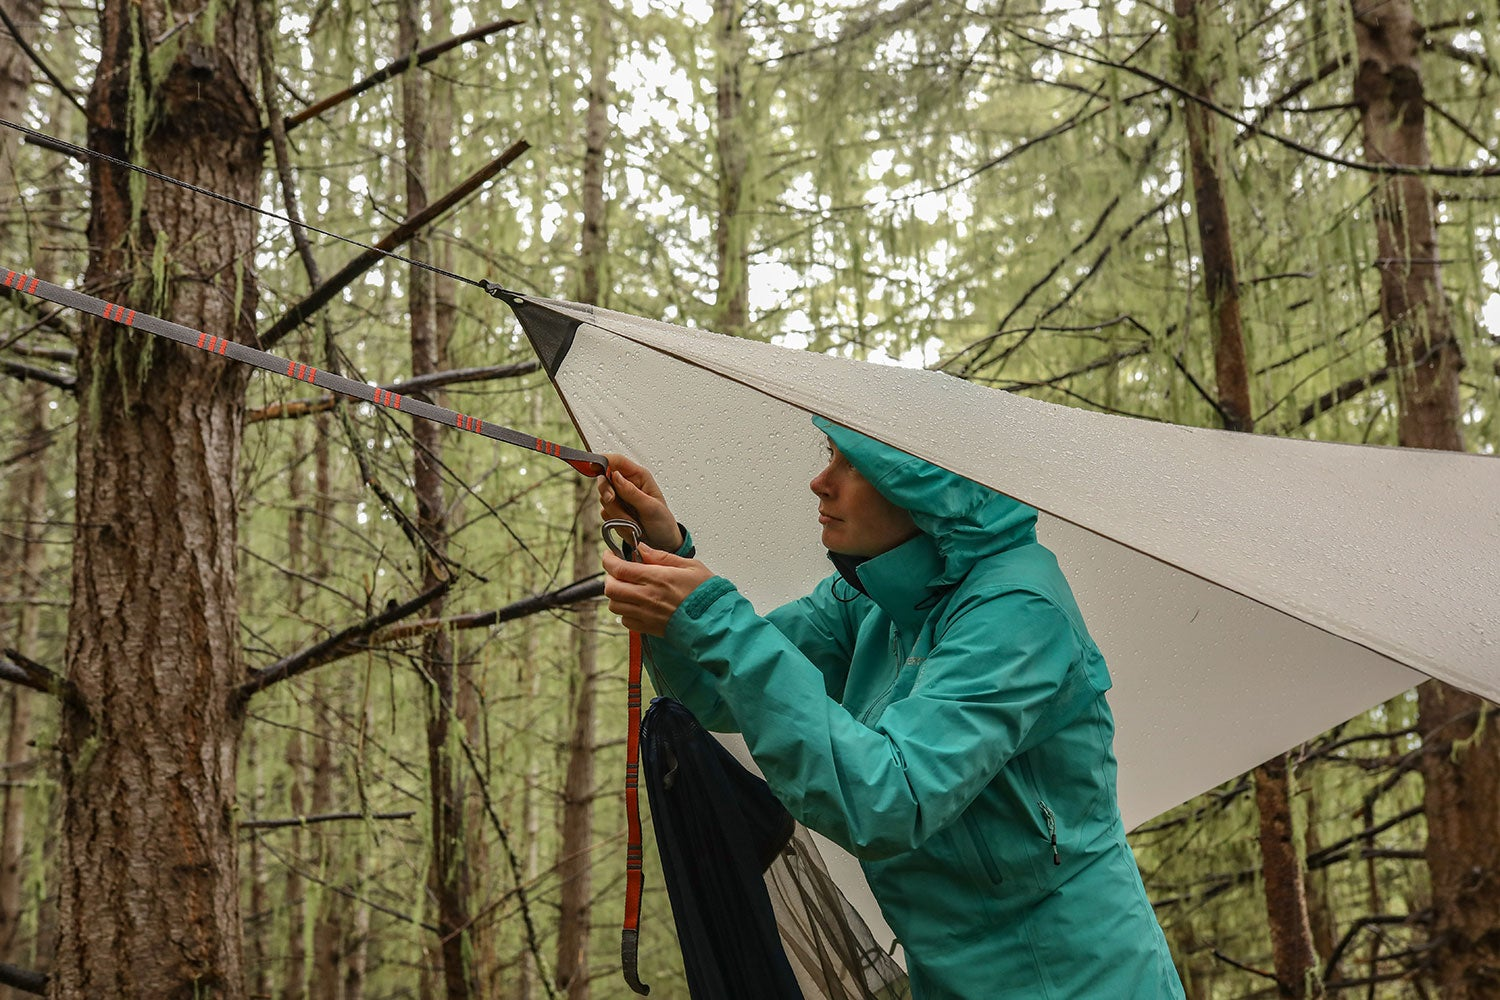 a woman ties a hammock and a rainfly to a tree in the rain in a forest